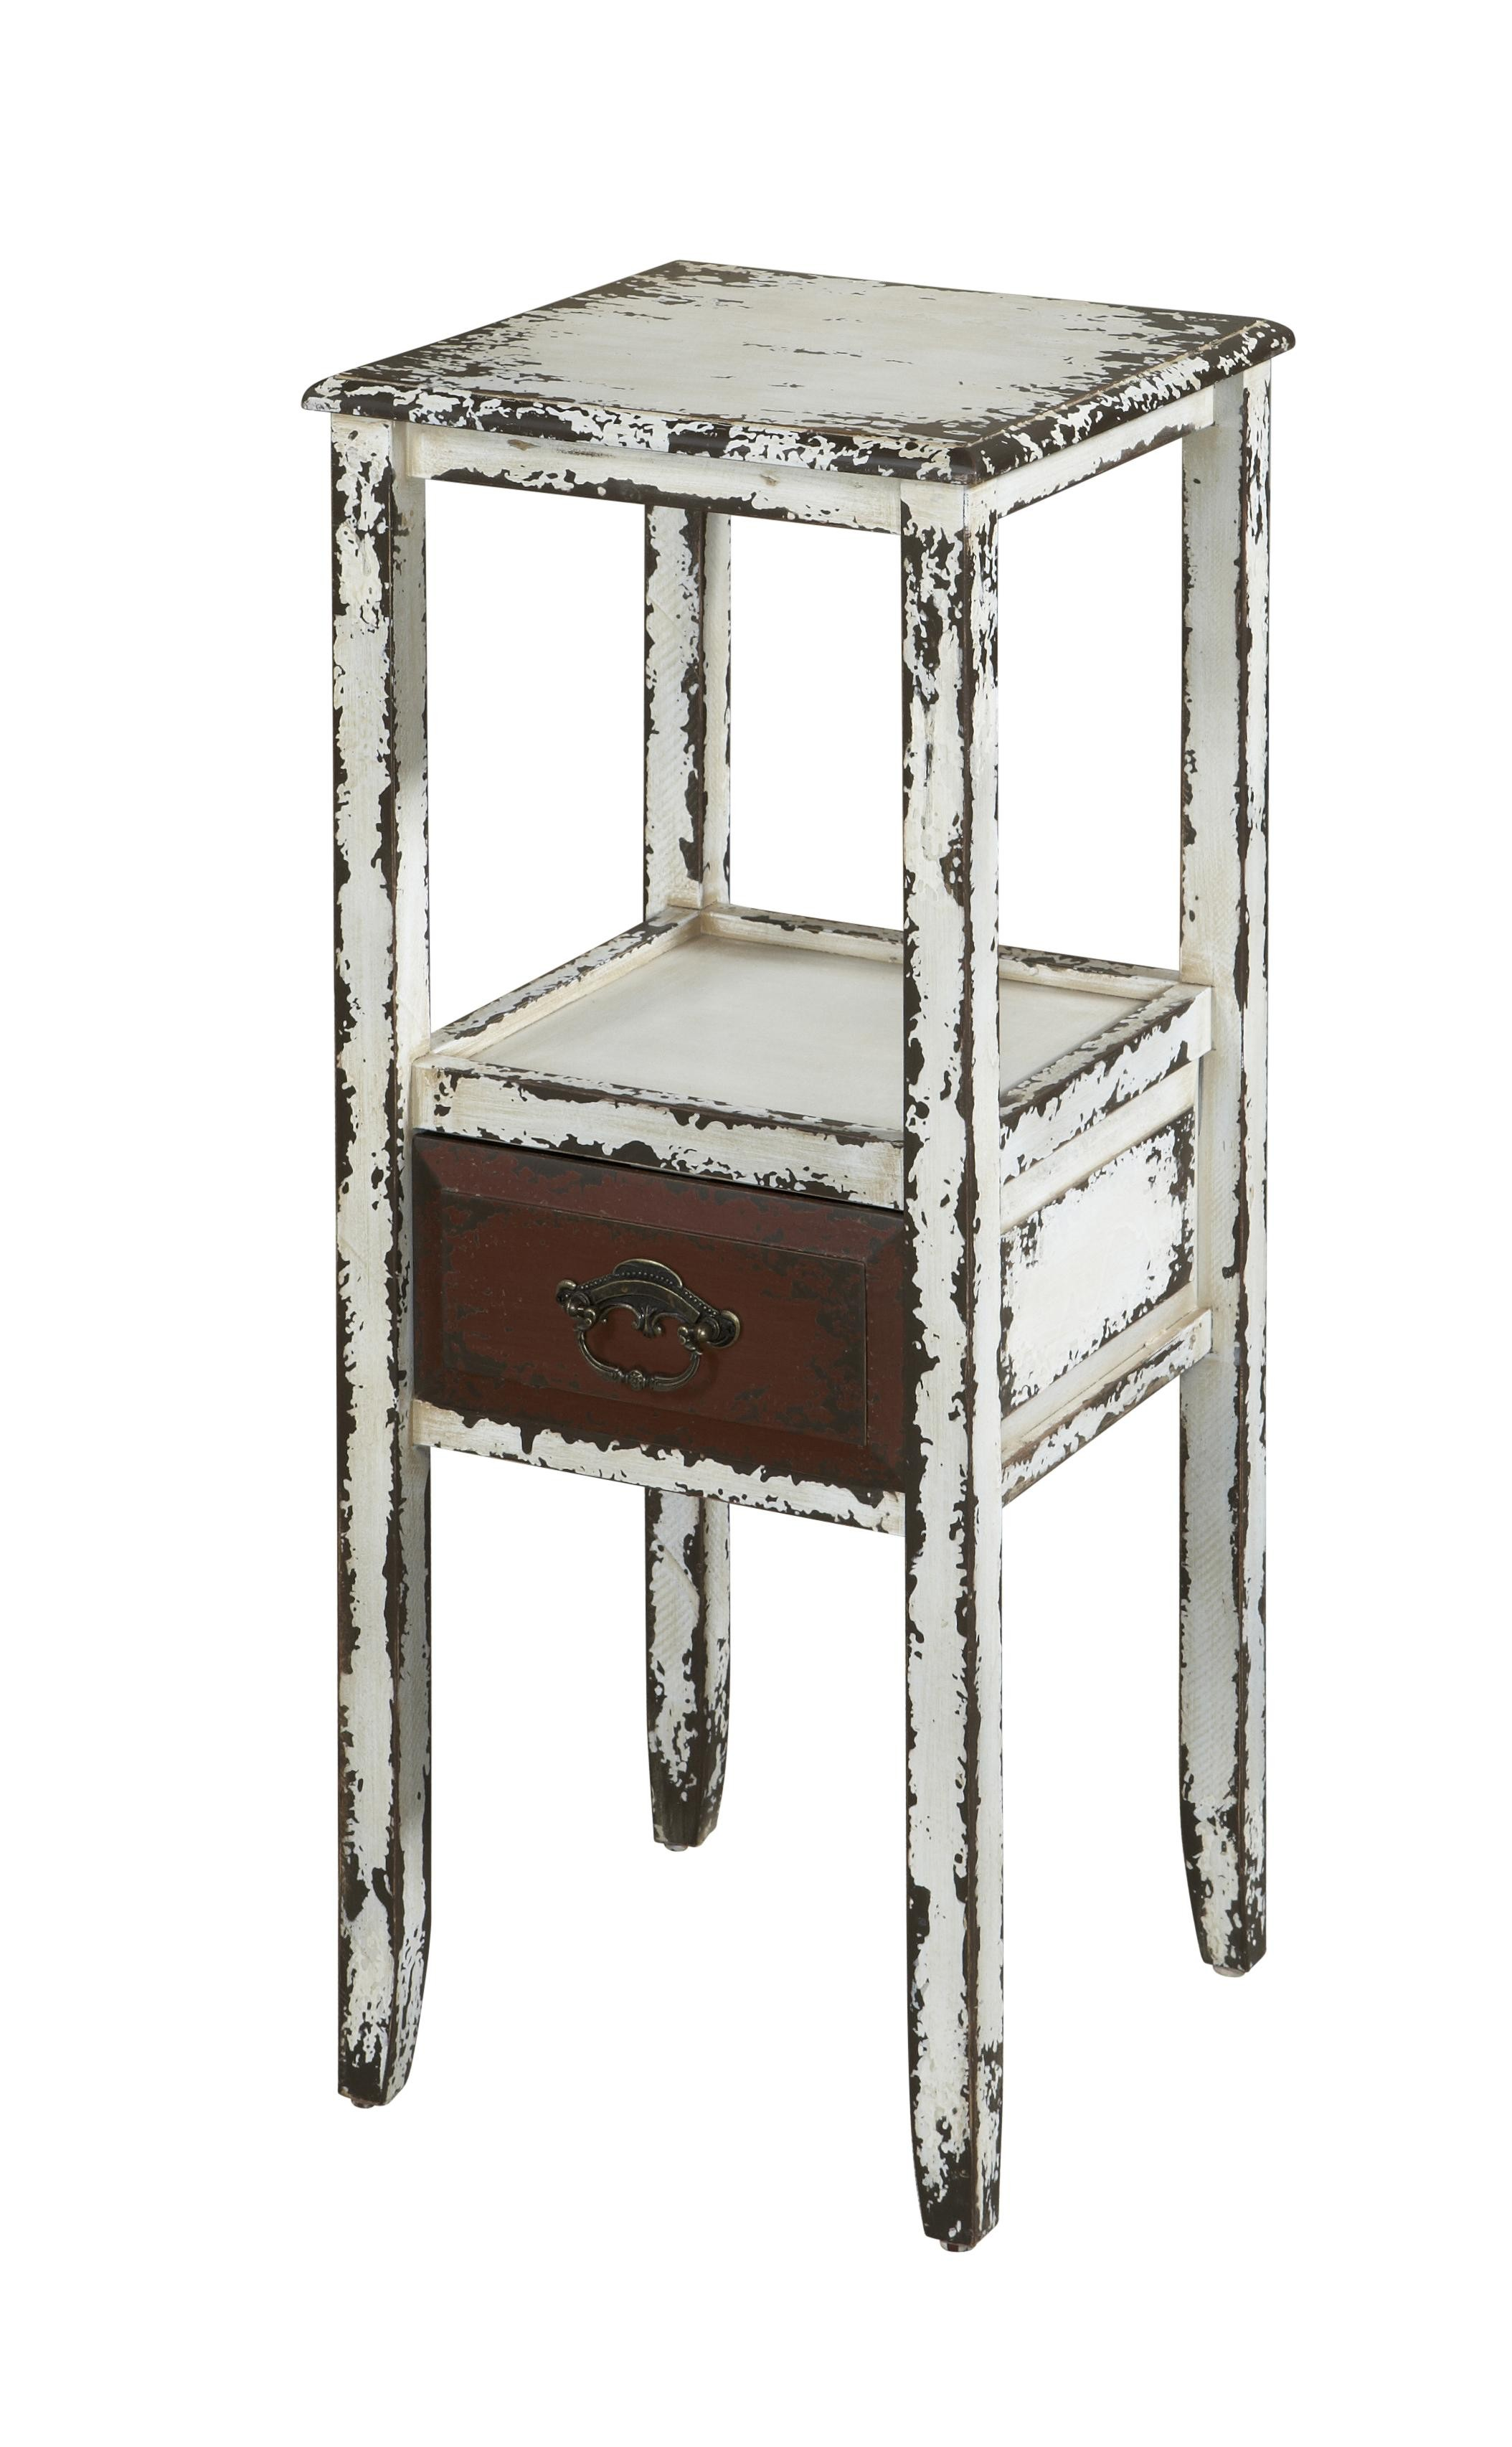 antique white end tables powell parcel drum accent table gold new home decor ideas black legs furnishing small spaces martha stewart outdoor furniture mirrored cabinets and chests